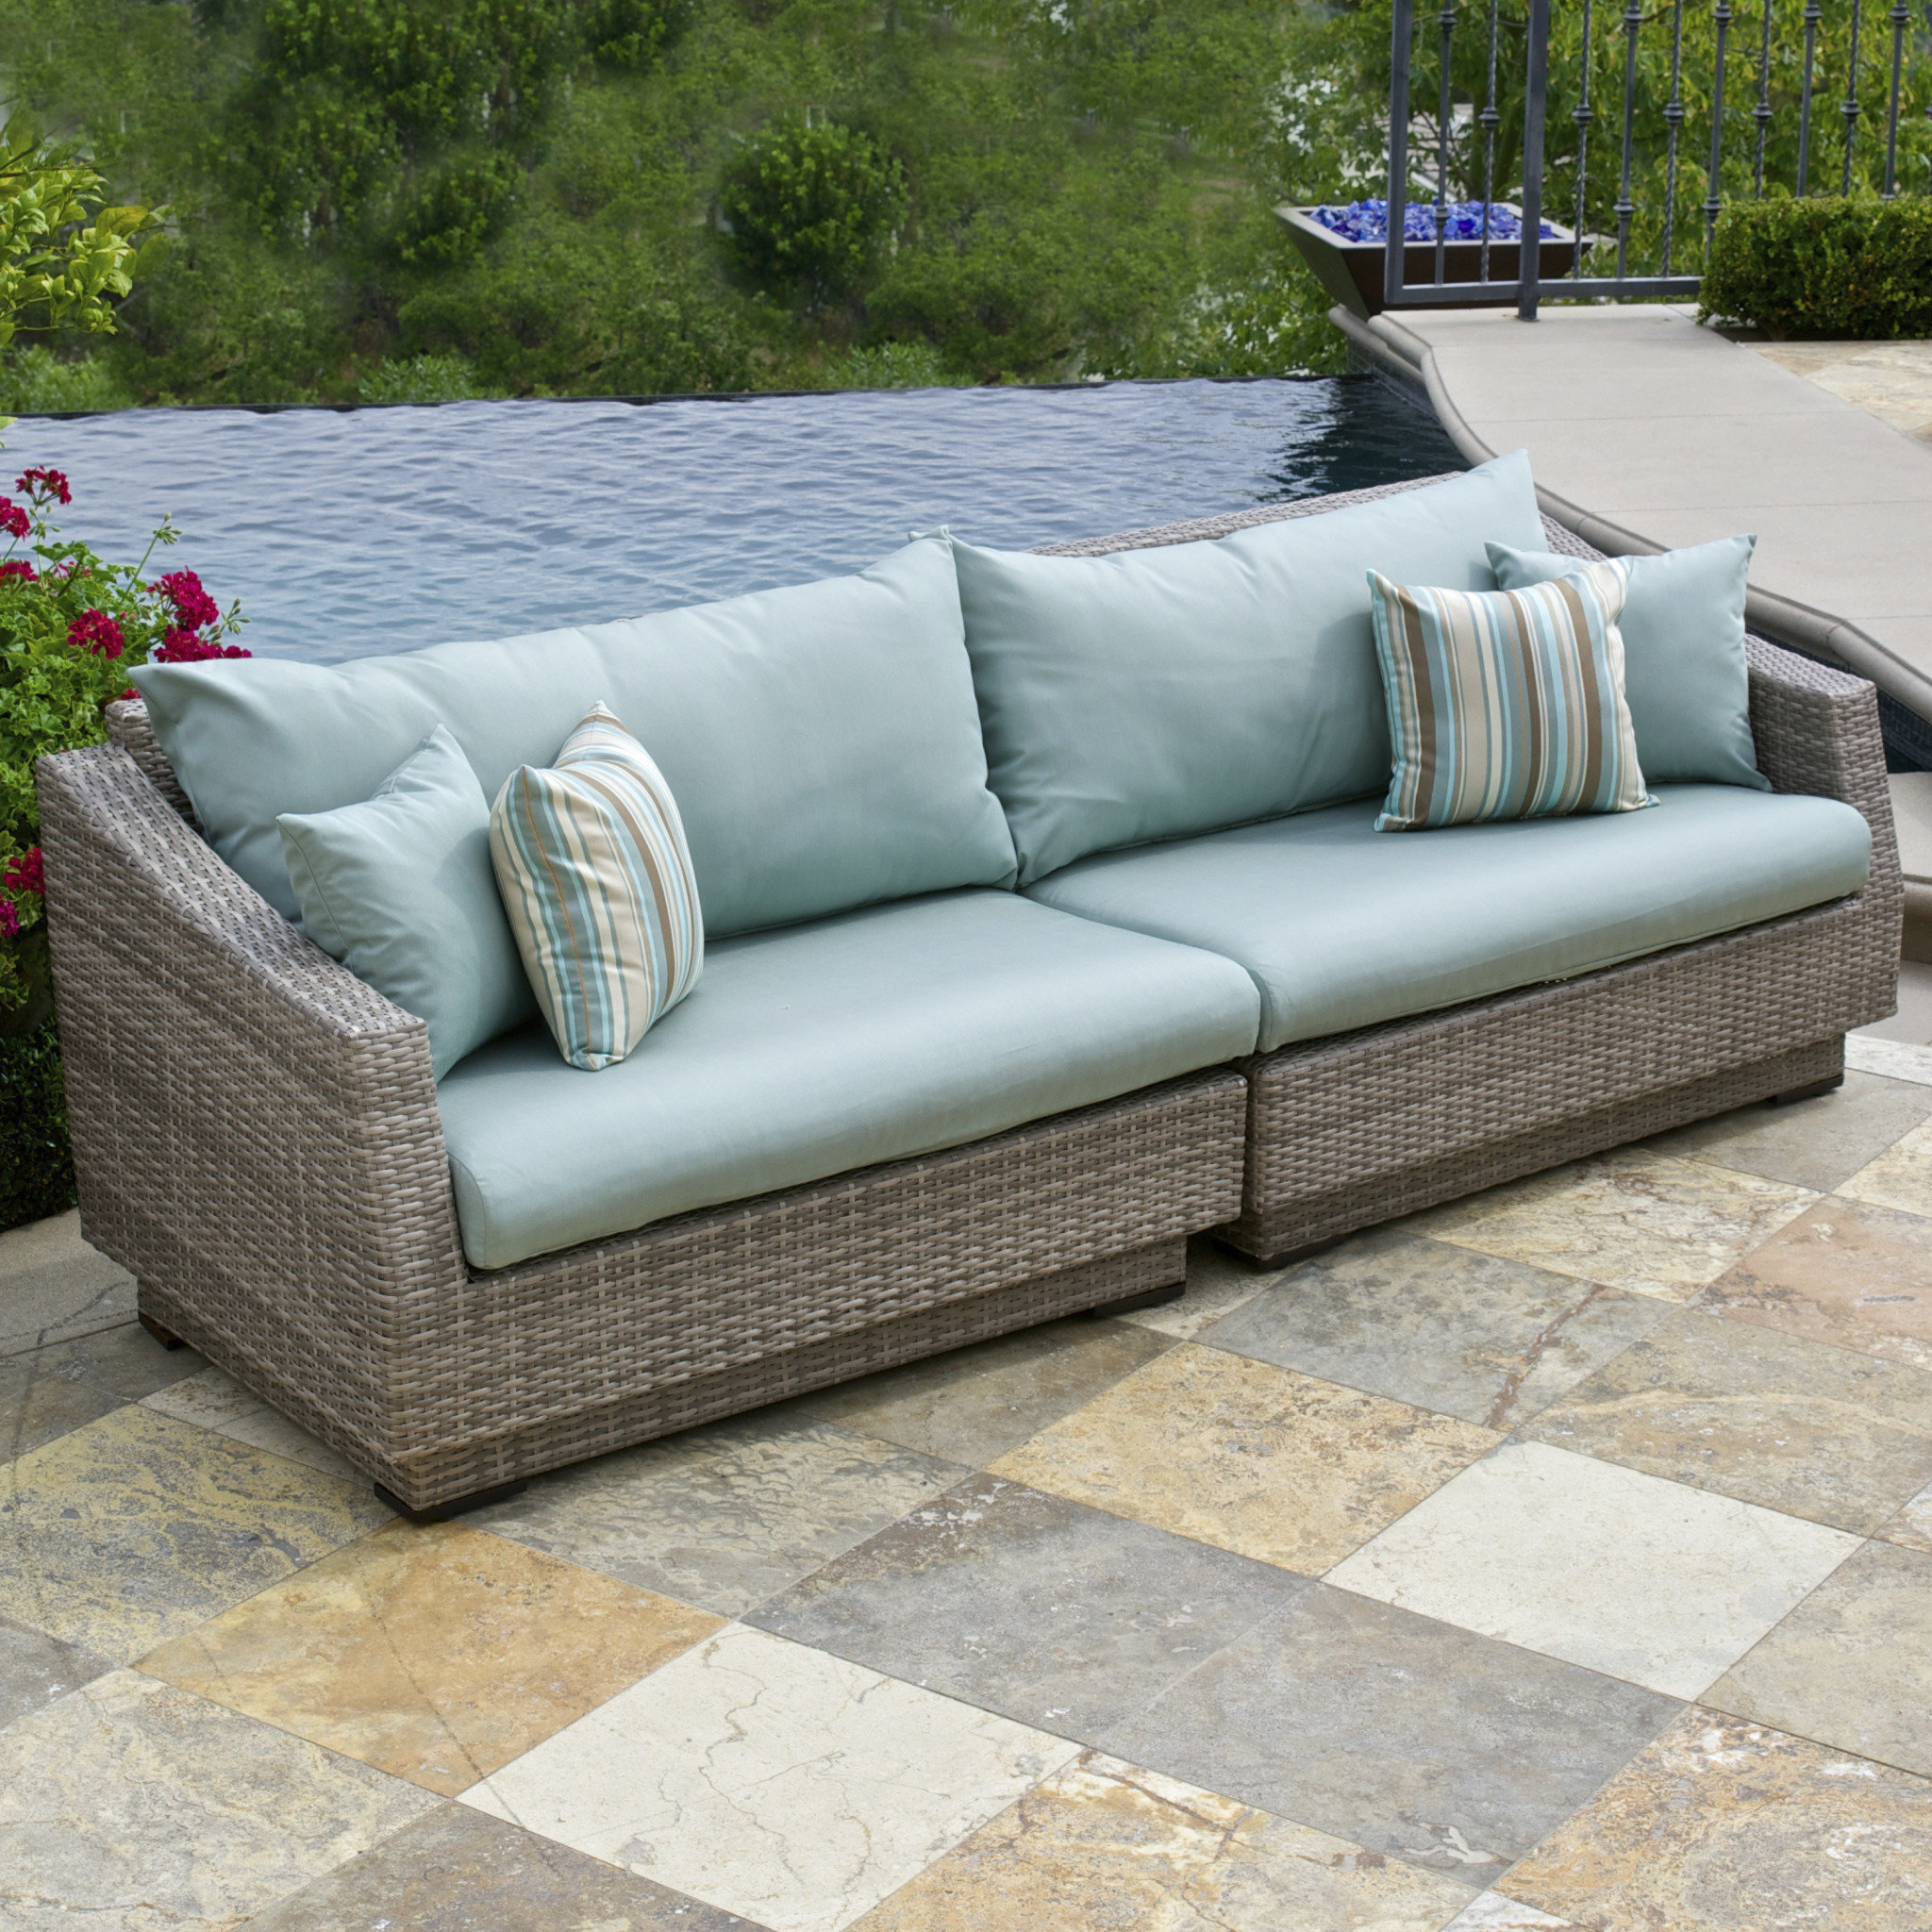 Newest Castelli Patio Sofas With Sunbrella Cushions Inside Castelli Patio Sofa With Sunbrella Cushions (View 17 of 20)